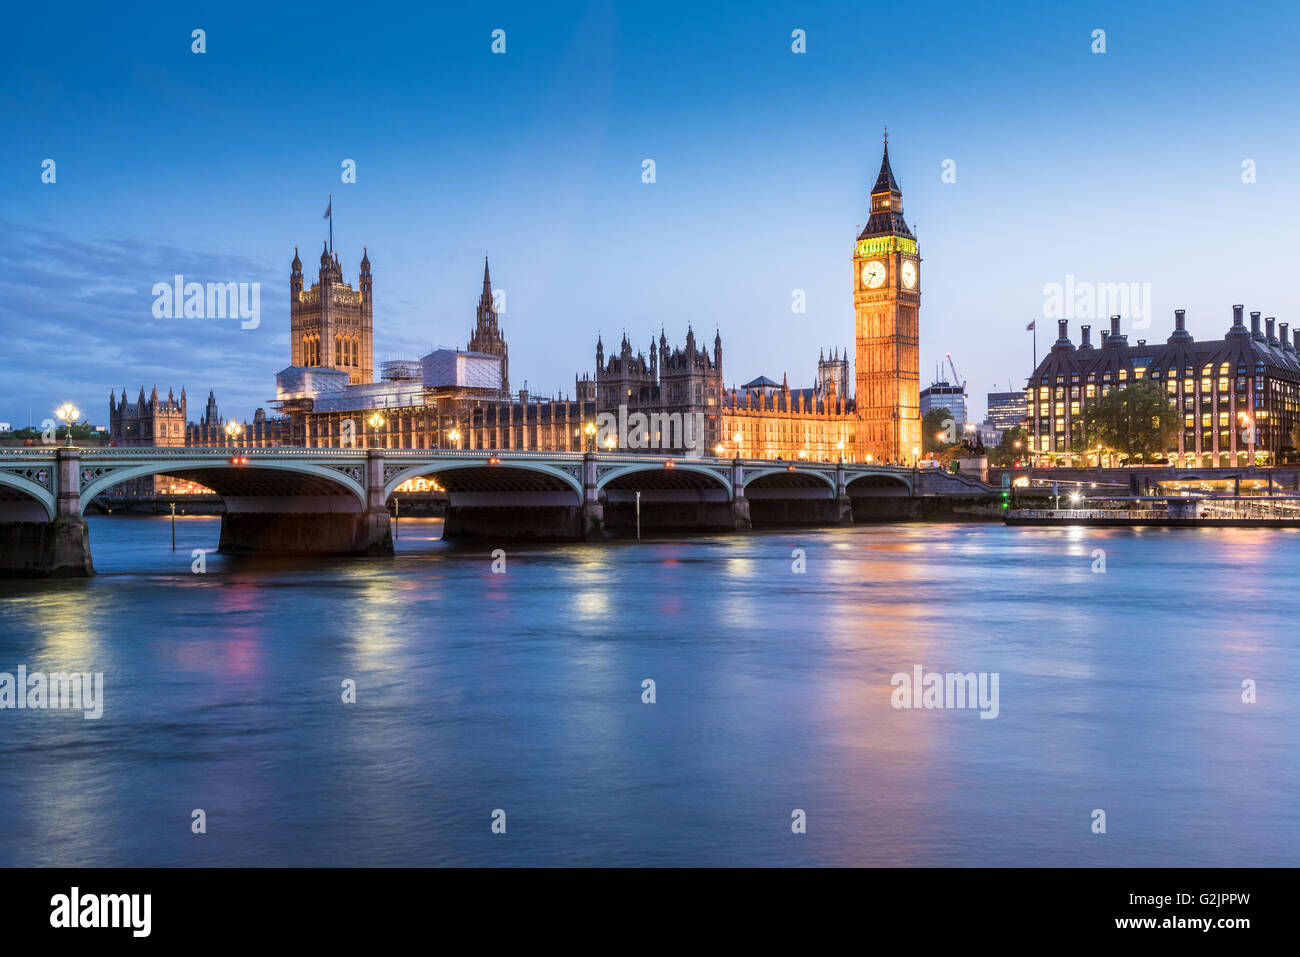 The Houses of Parliament, Big Ben and the River Thames in London, England at dusk - Stock Image